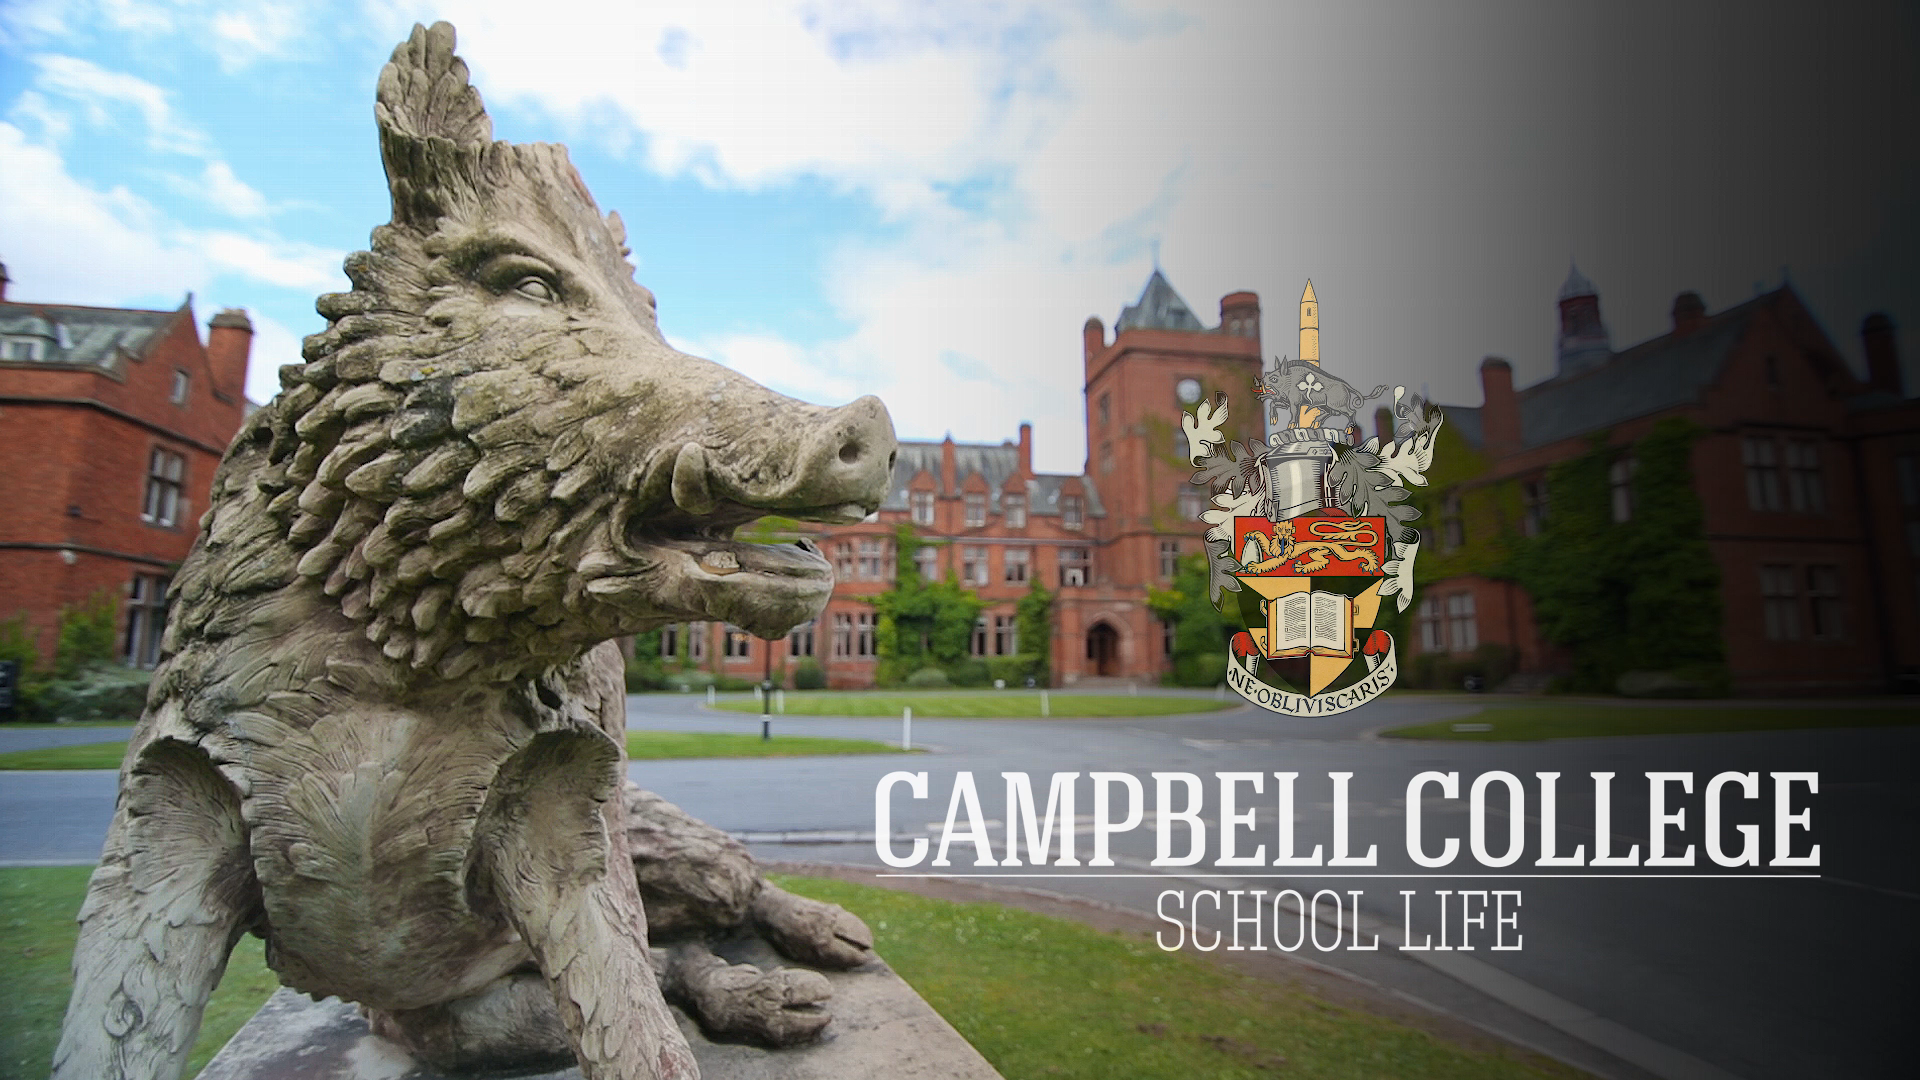 campbell college school life